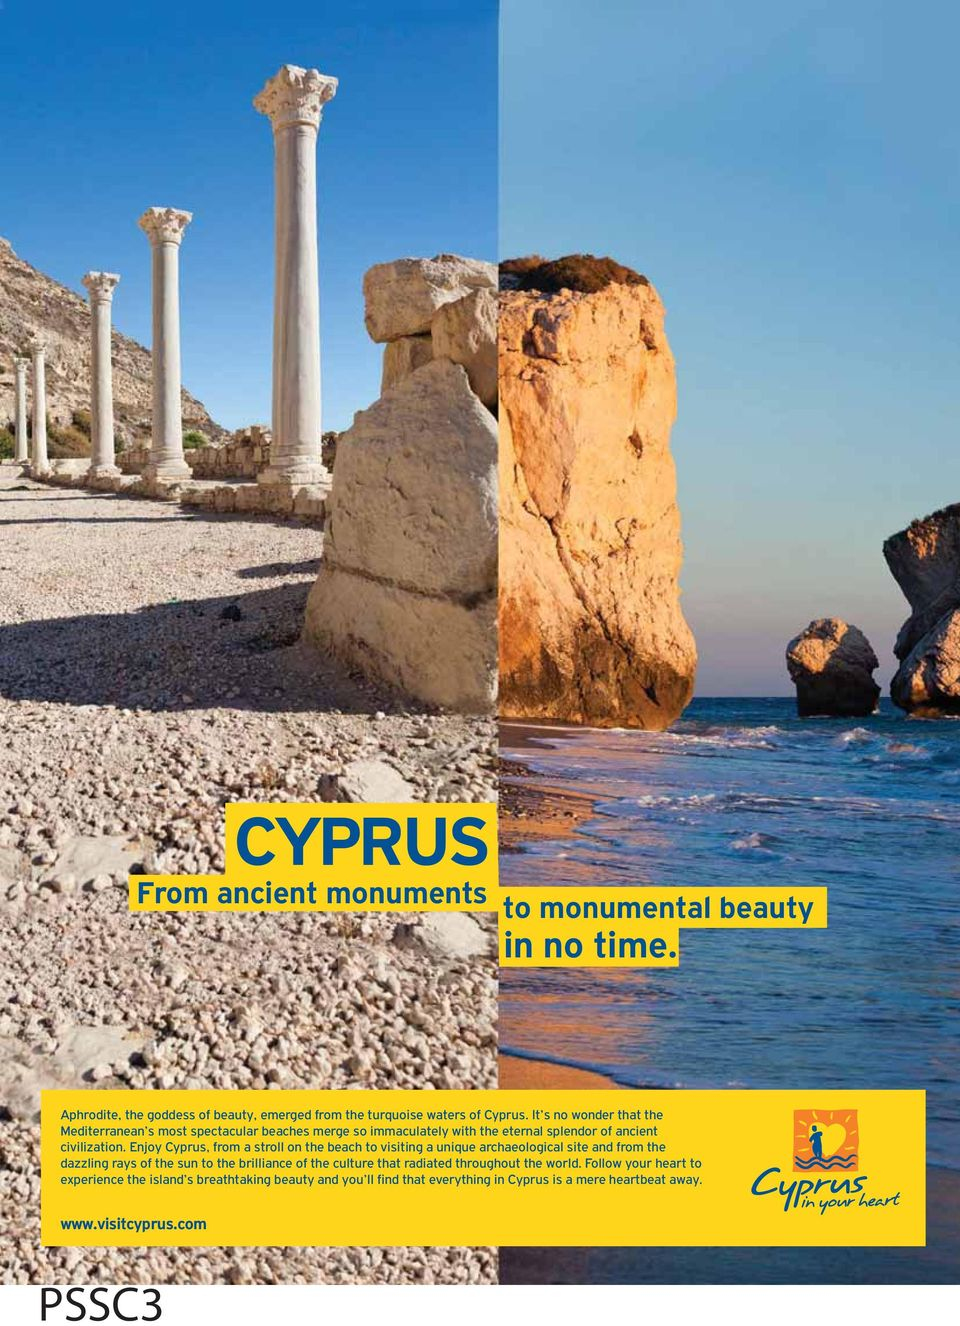 Enjoy Cyprus, from a stroll on the beach to visiting a unique archaeological site and from the dazzling rays of the sun to the brilliance of the